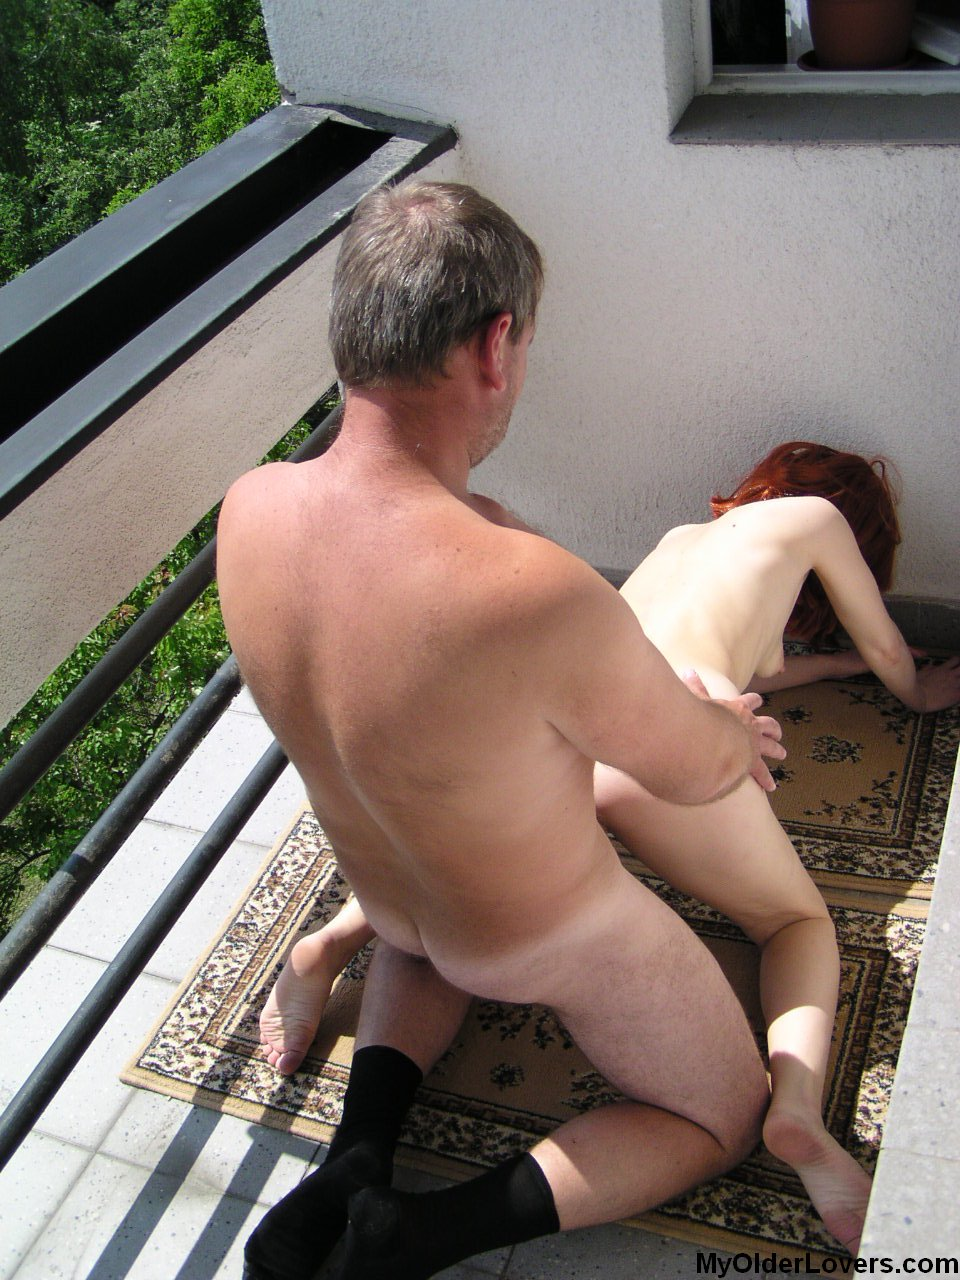 Wife fucked on balcony really